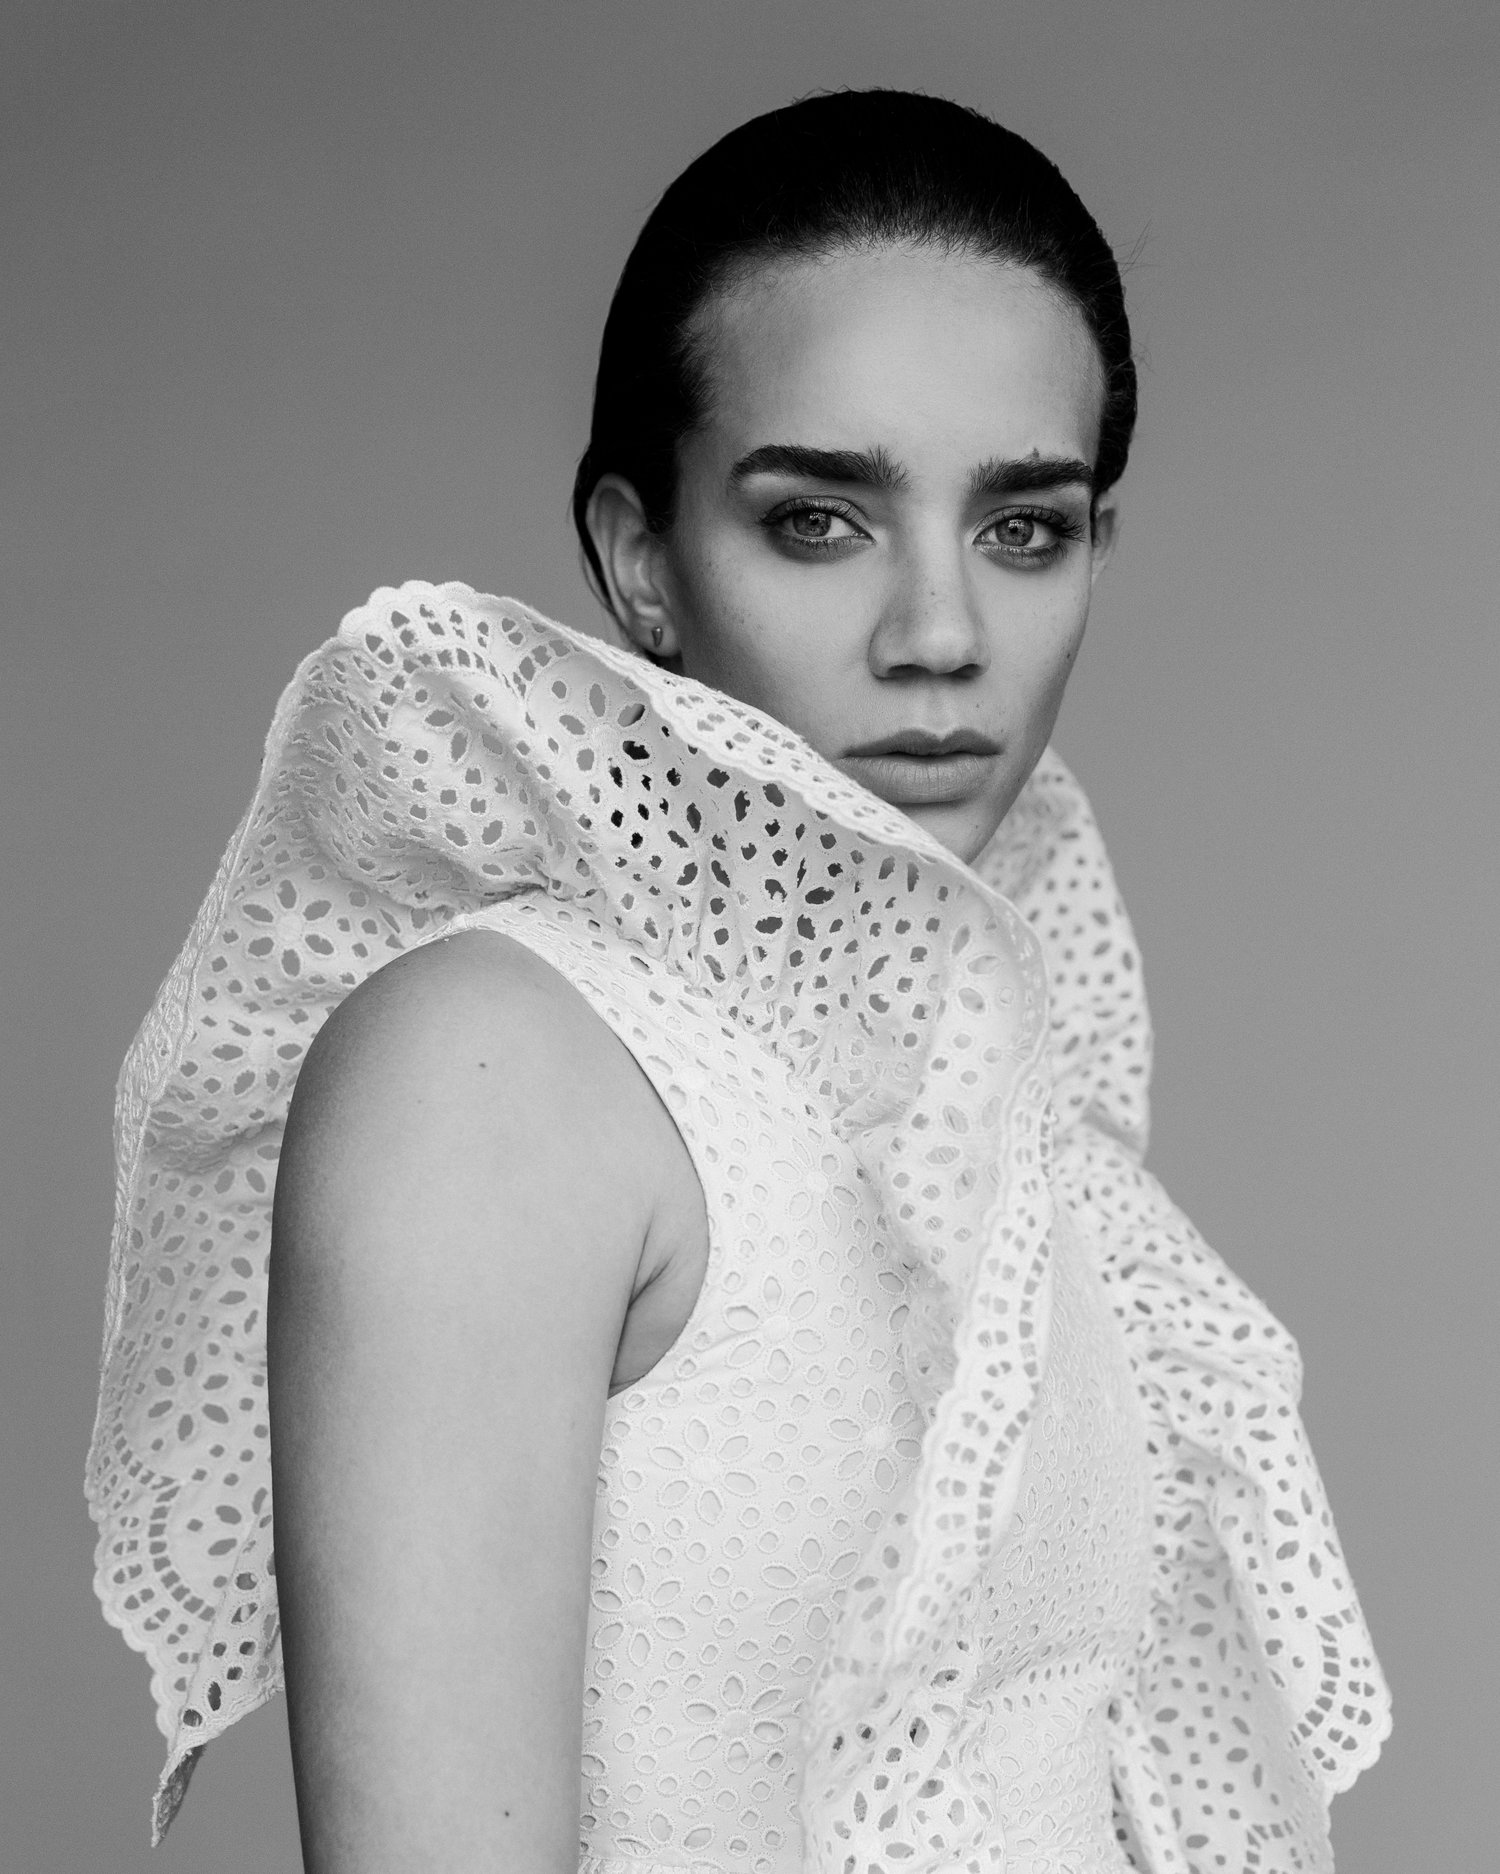 Hannah John Kamen in Photoshoot